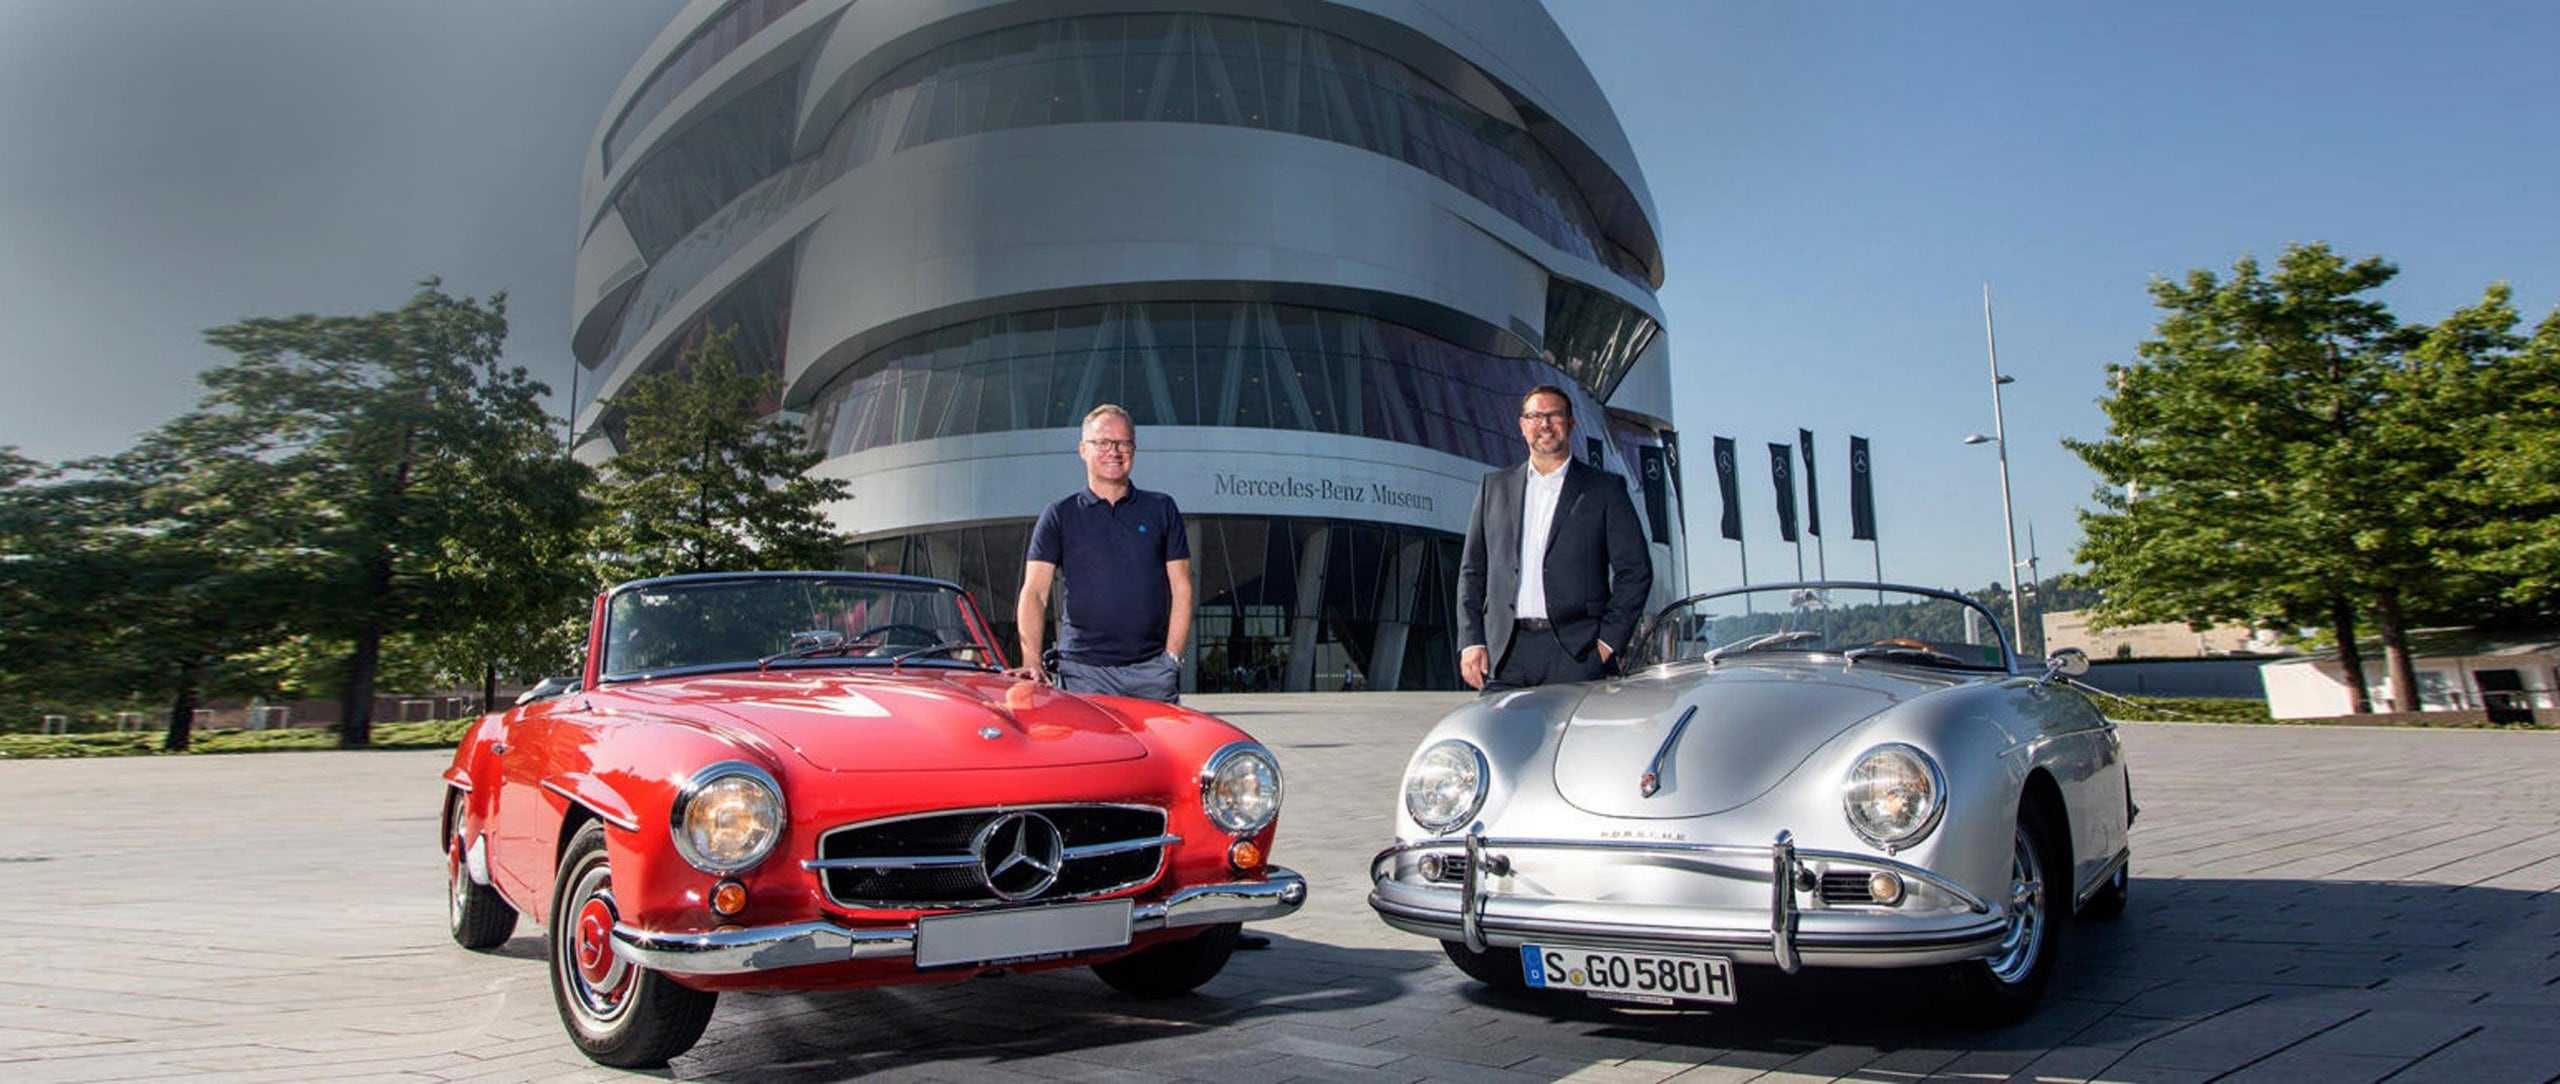 Discounted entry to the Mercedes-Benz Museum for Porsche Museum ticket holders.